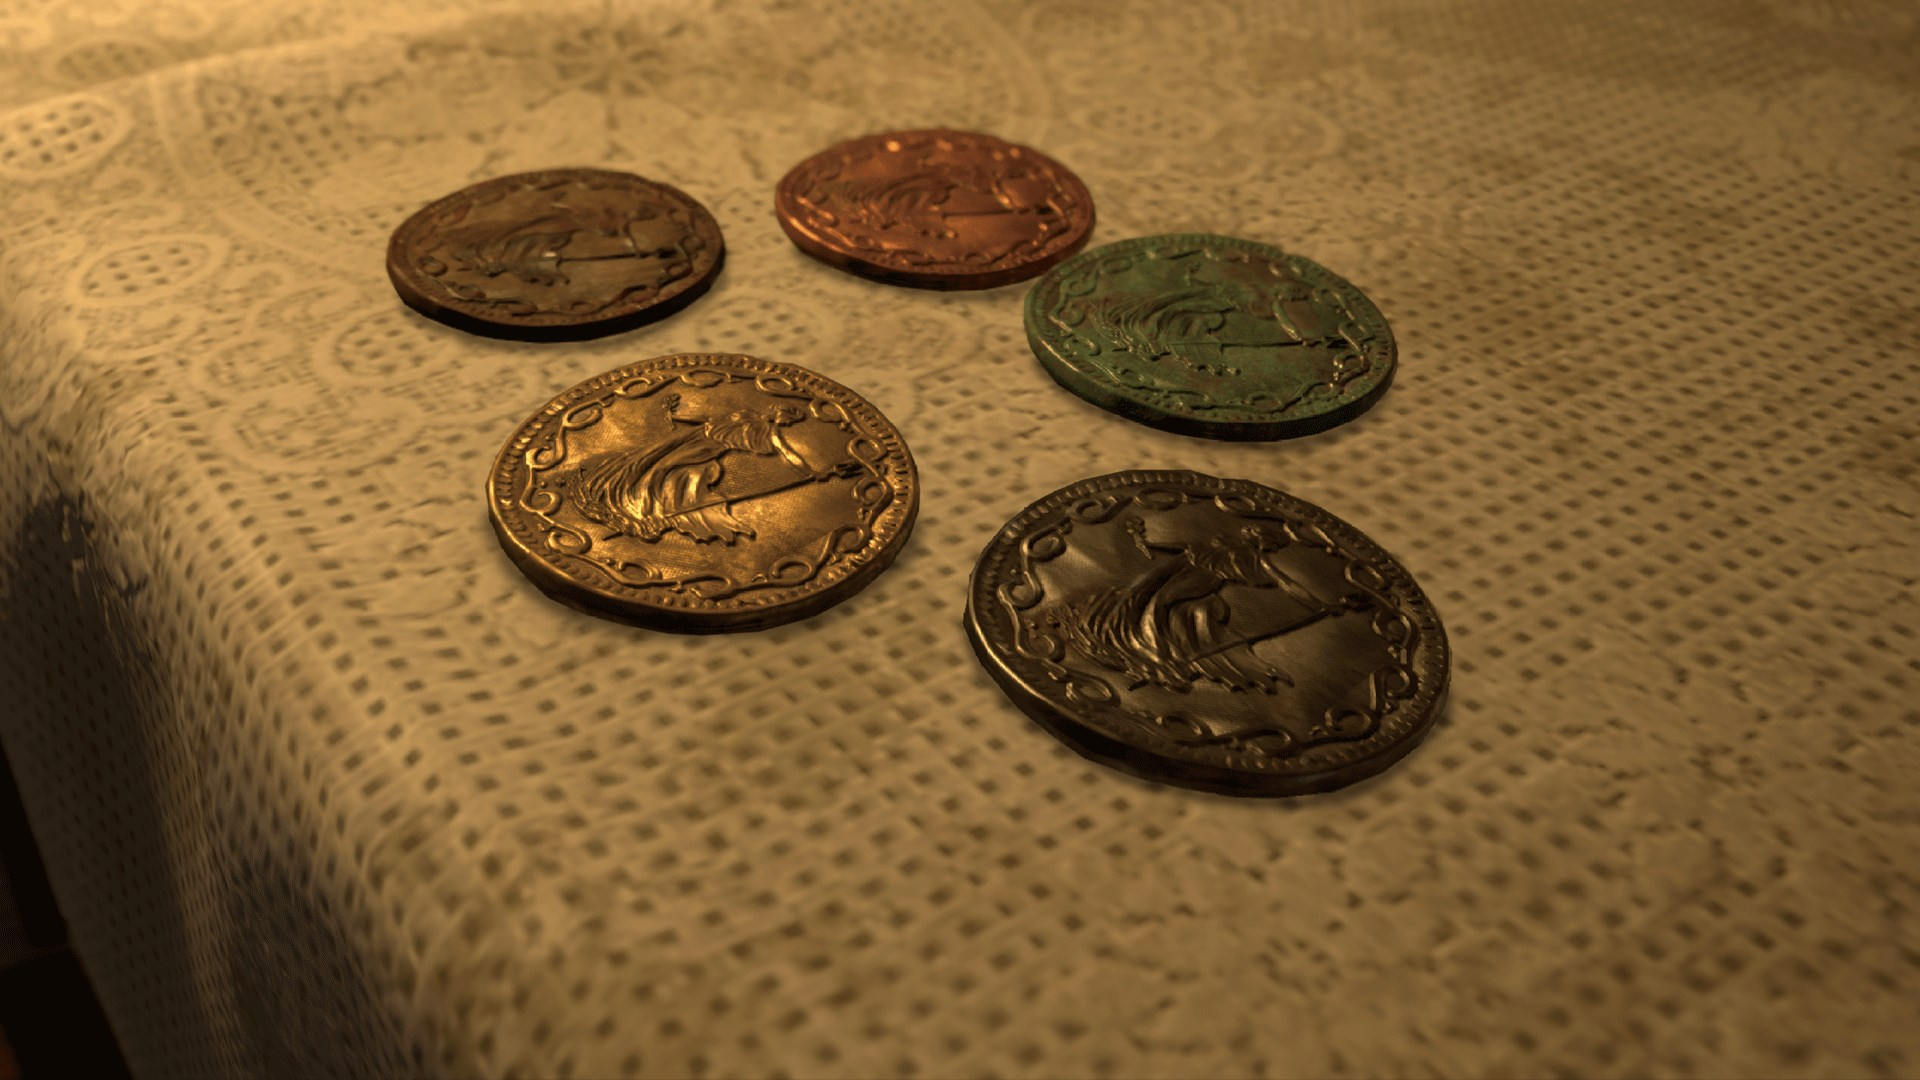 5-Coin Set & Madhouse Mode Unlock